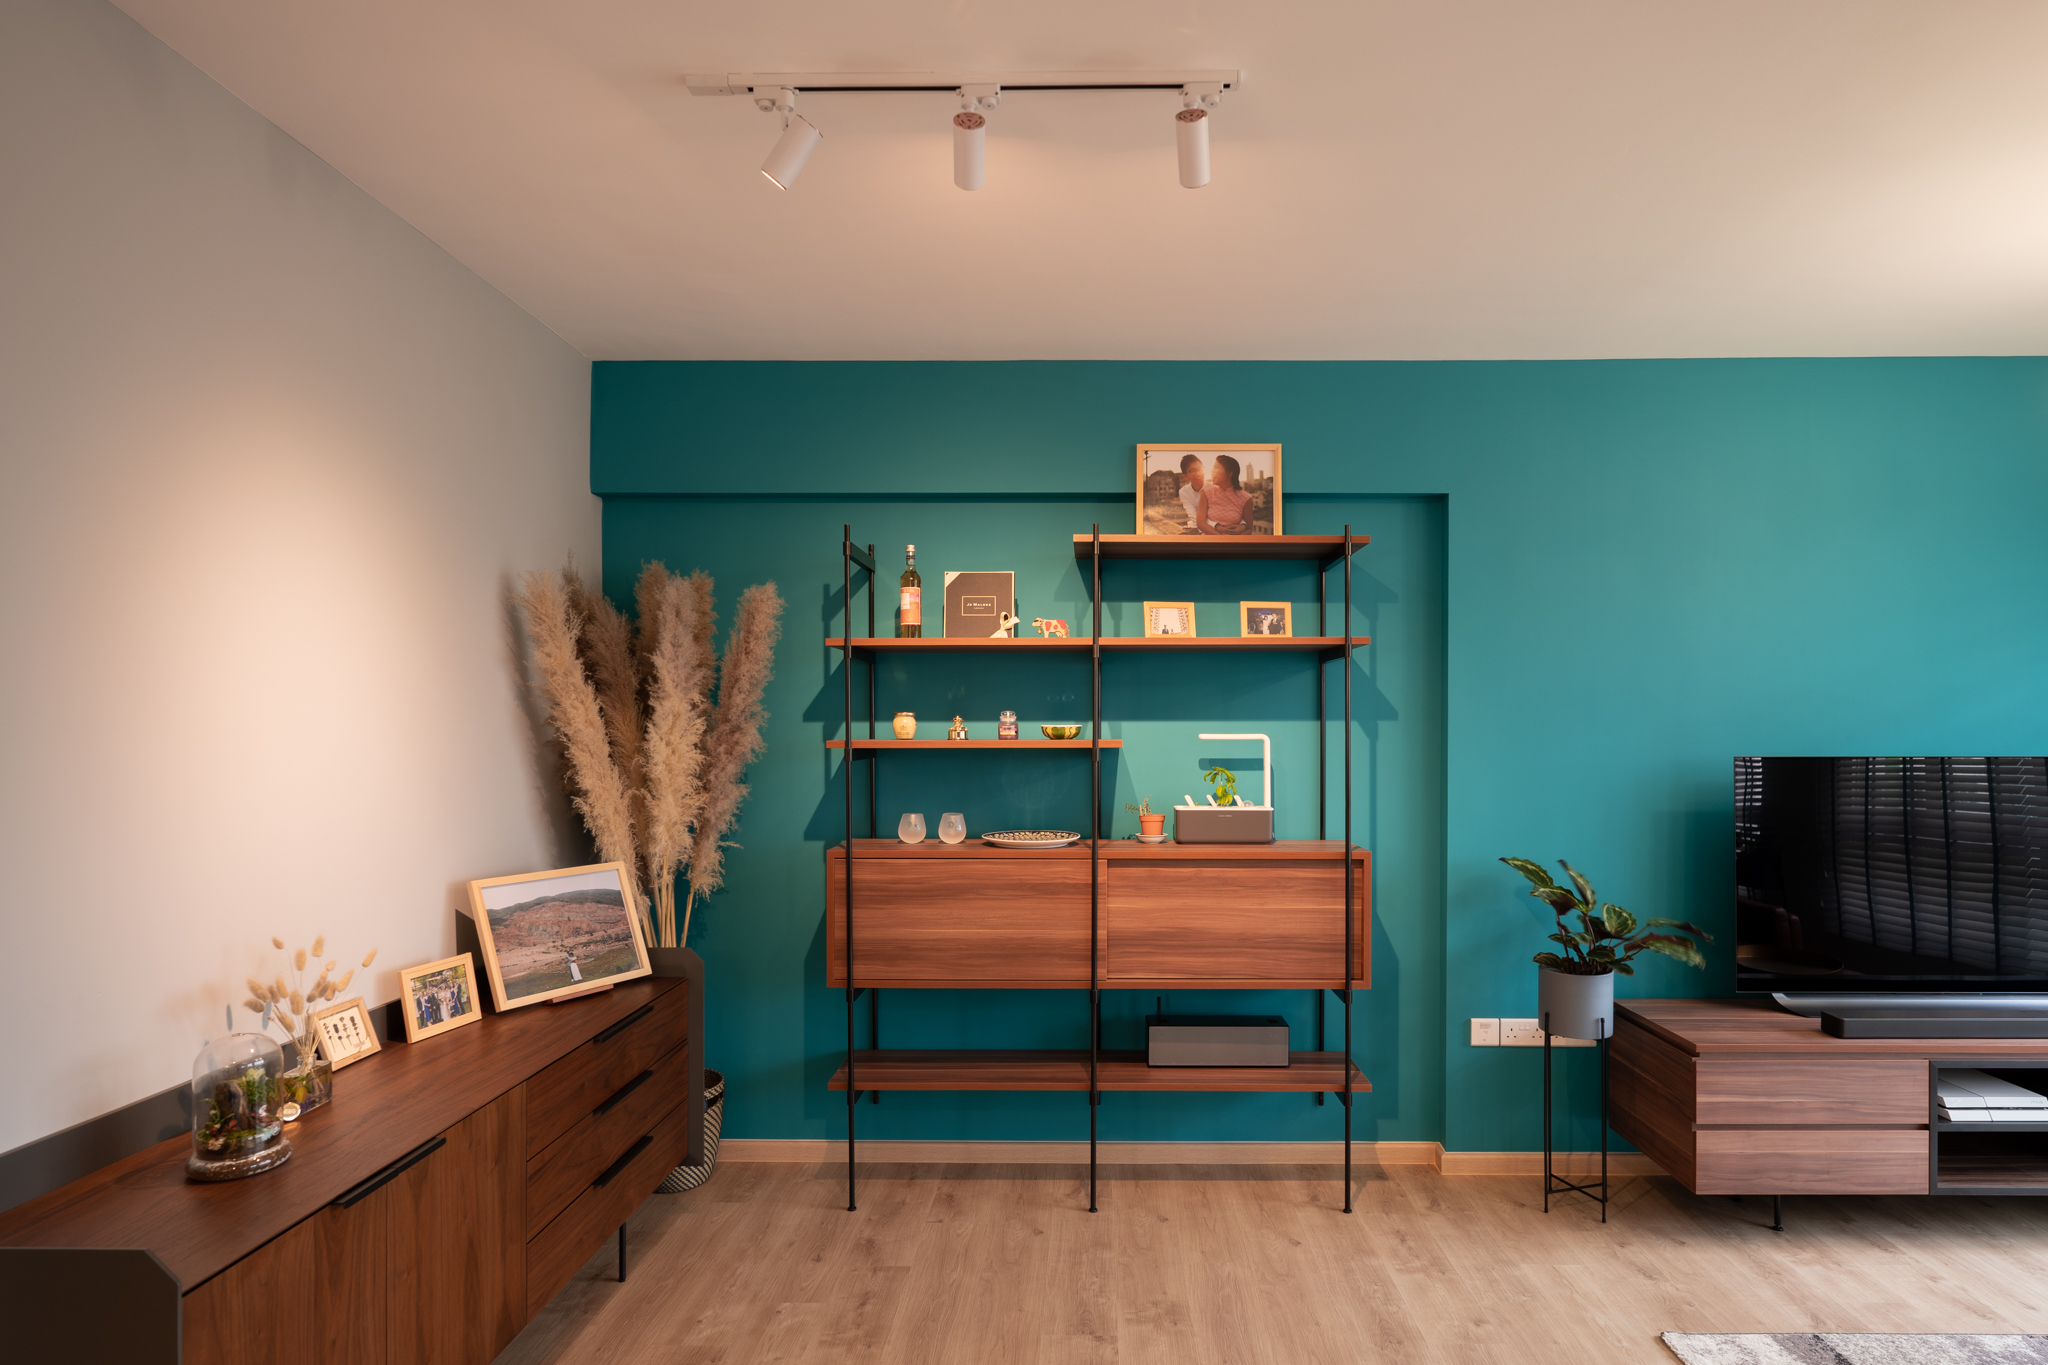 squarerooms-arche-interior-design-bright-blue-living-room-wall-wooden-furniture